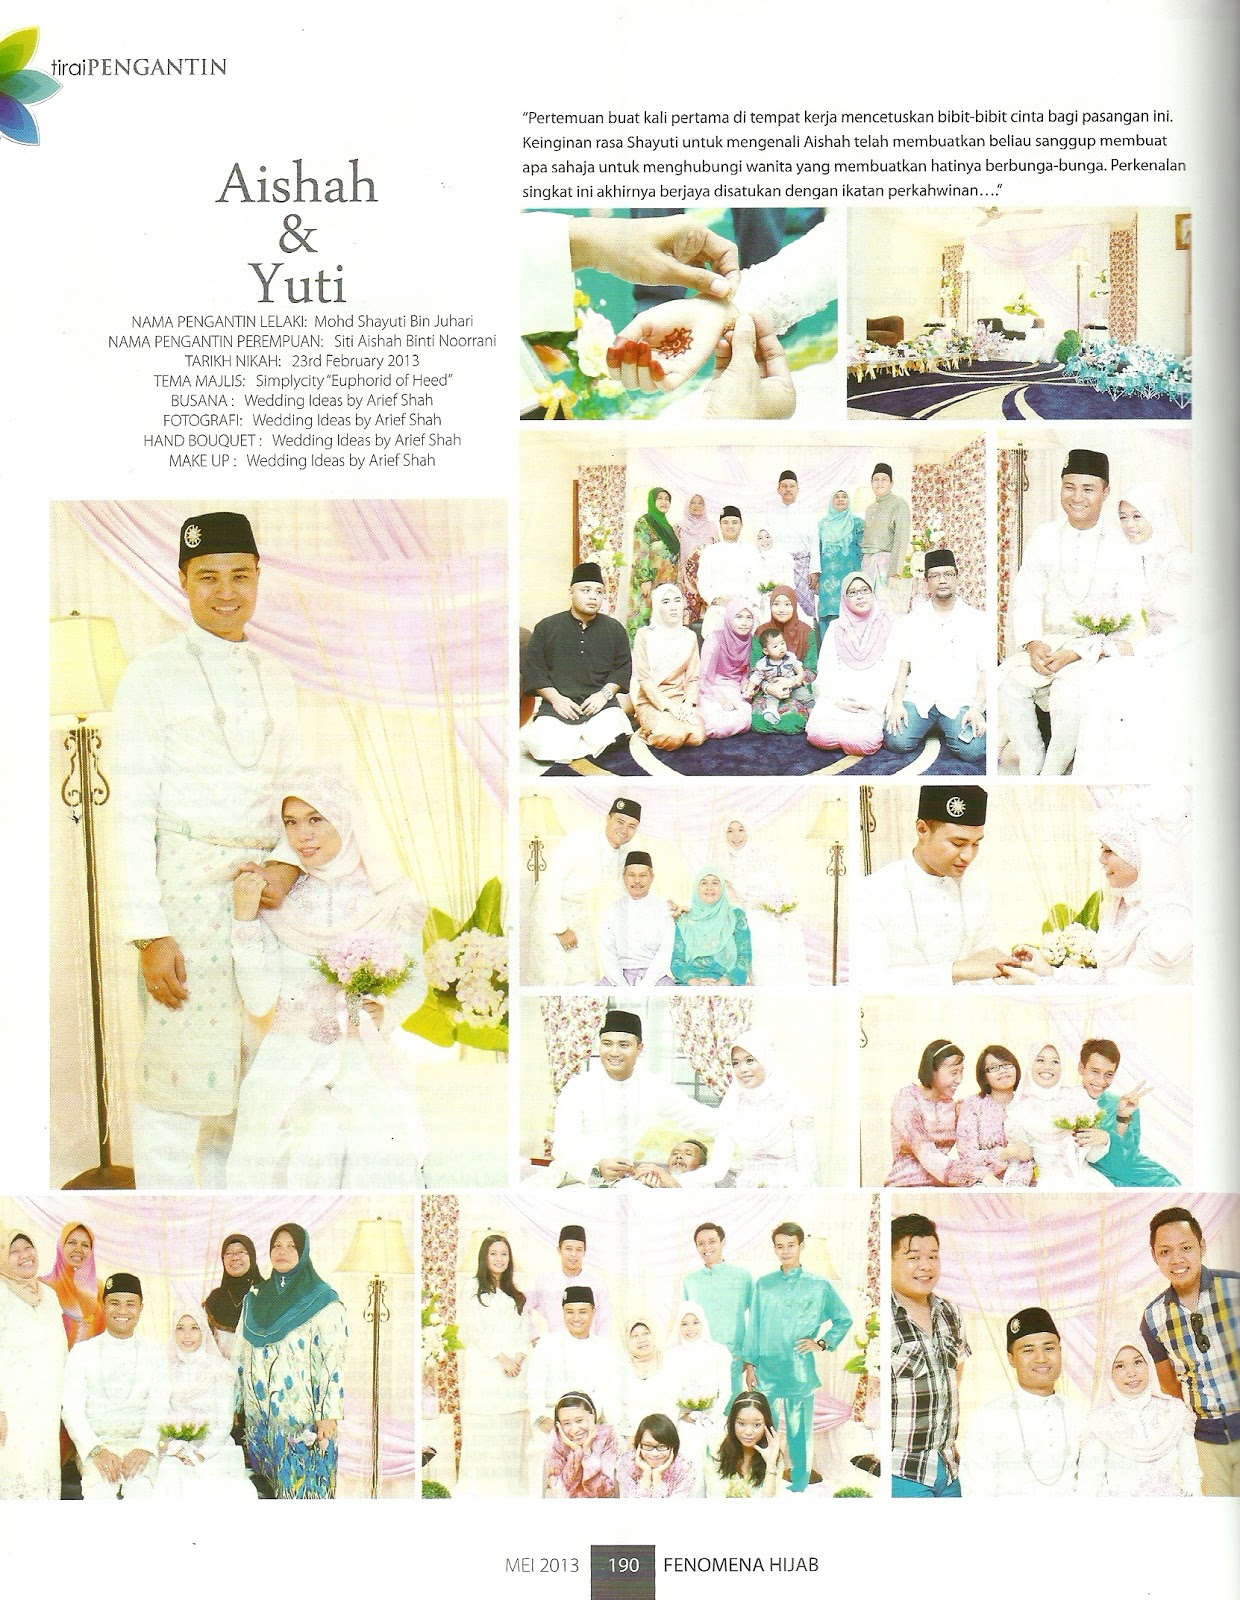 wedding ideas by arief shah wedding ideas paparan di majalah stailista isu mei 2013 28074